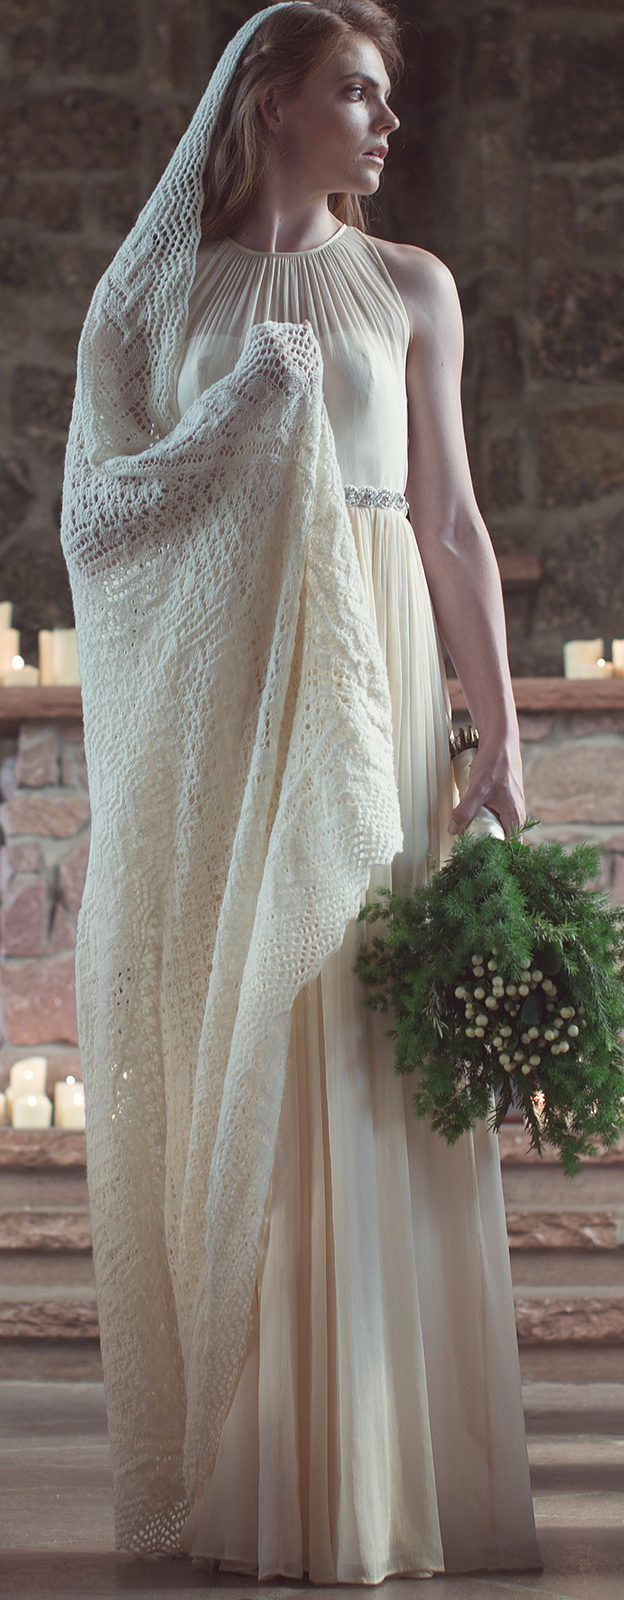 Knitting pattern for mariaus veil this lace masterpiece can be